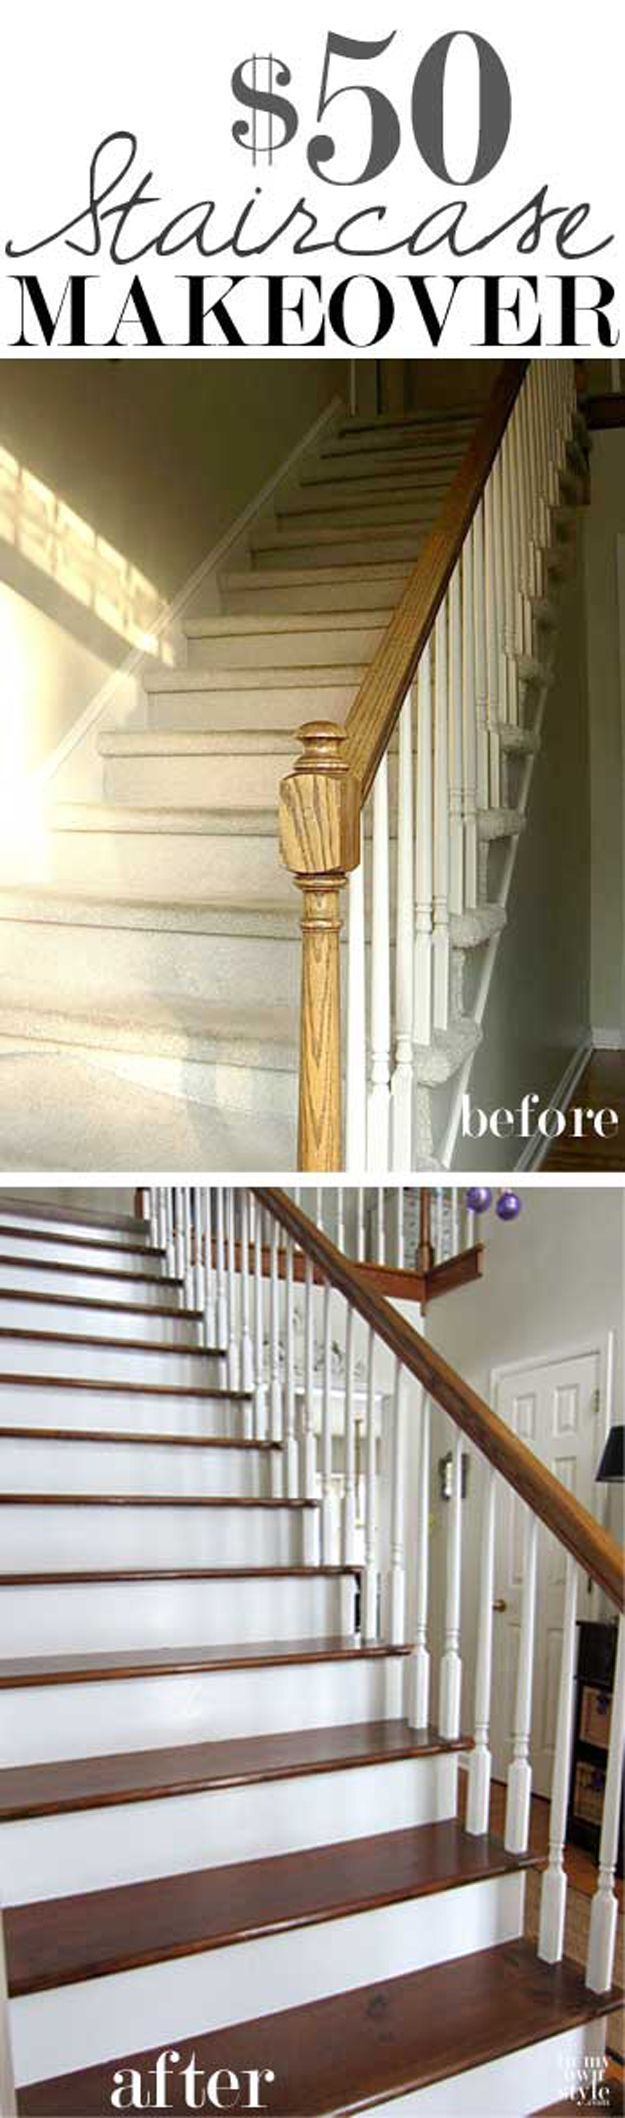 Foyer Staircase Quest : Best curved wall help me images on pinterest